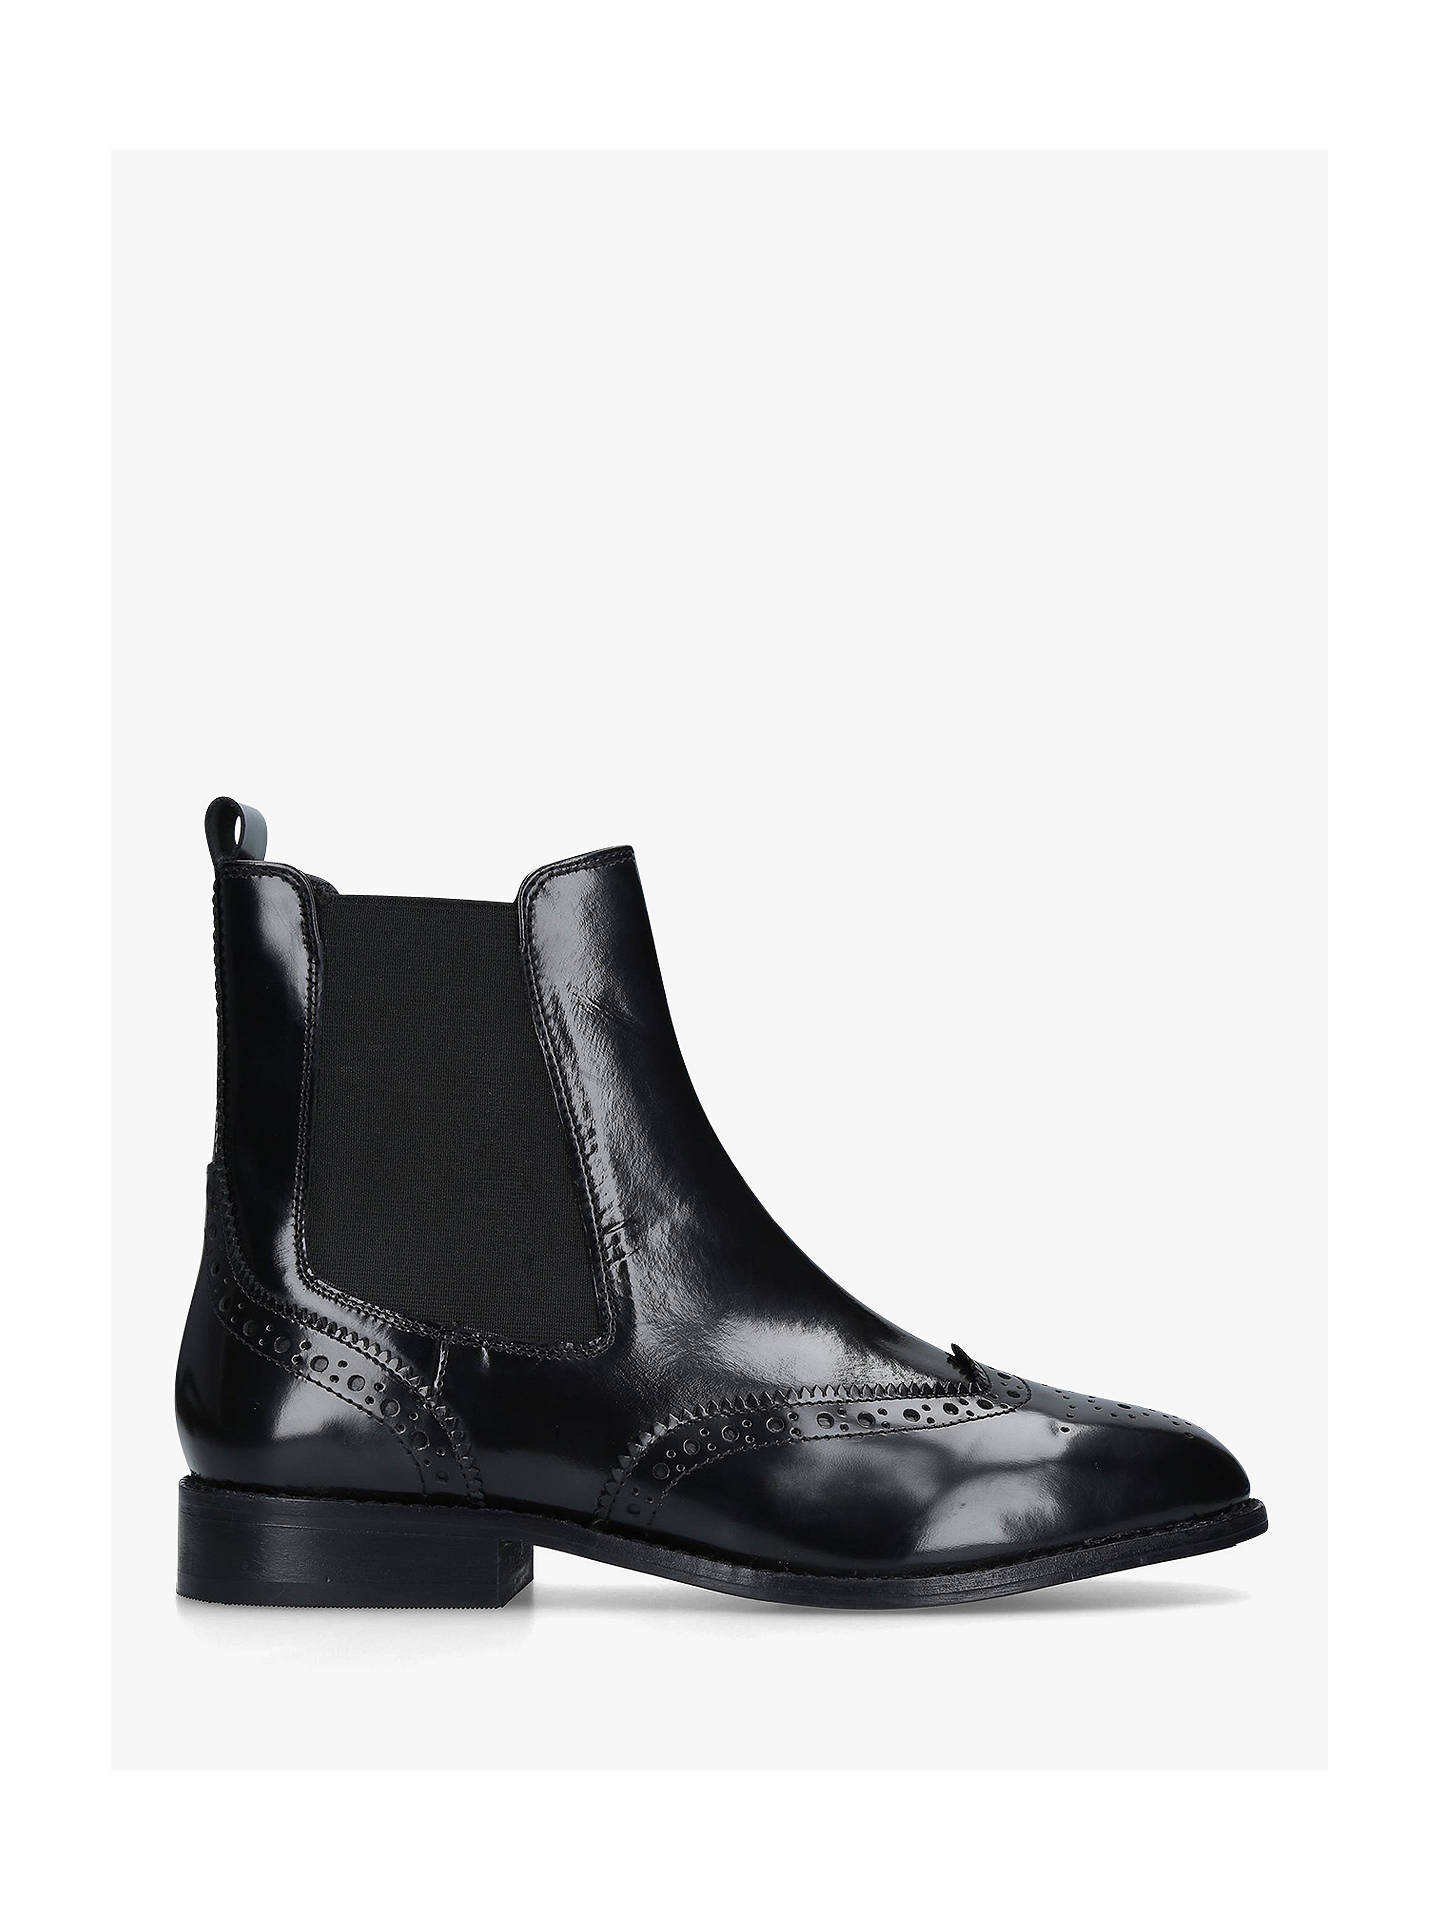 outlet sale new products 100% quality Carvela Comfort Rhea Block Heel Ankle Boots, Black Leather ...